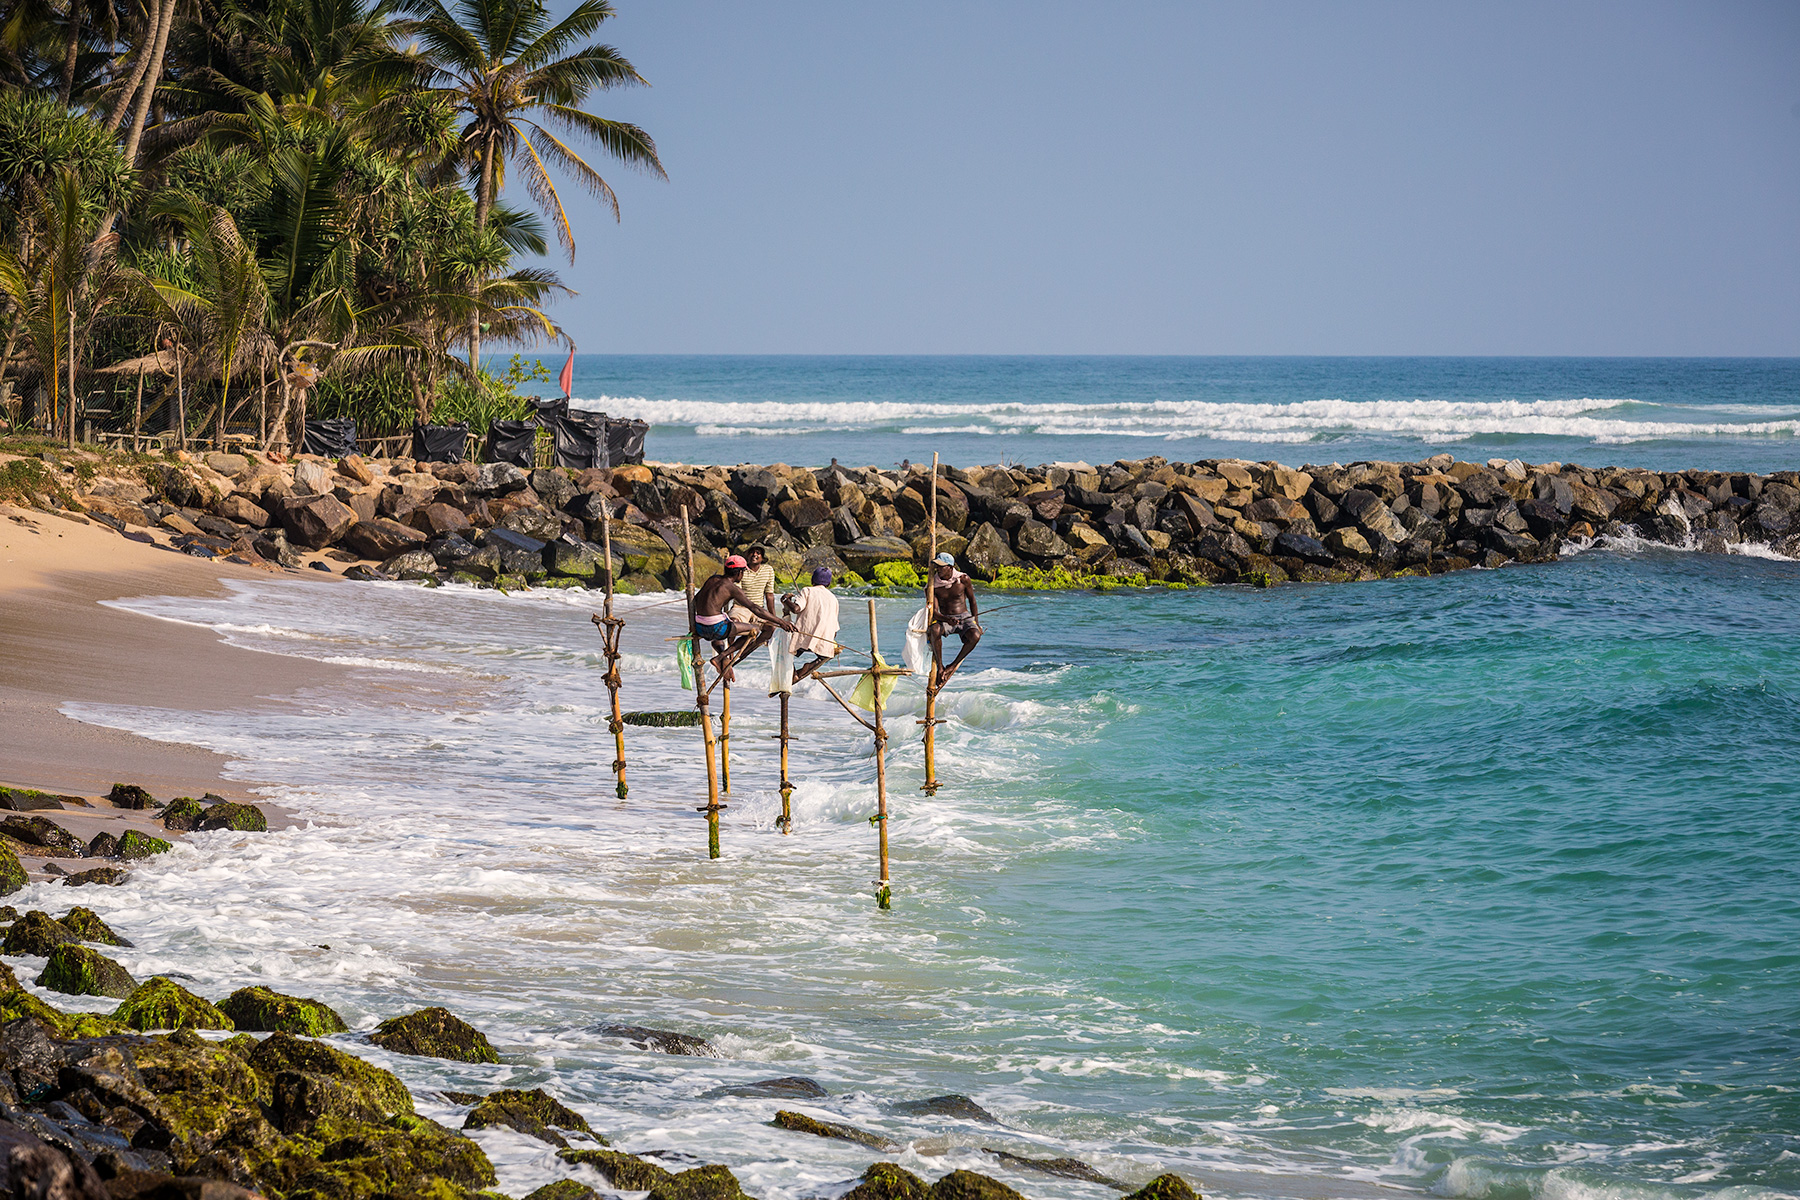 Pole fisherman in Galle